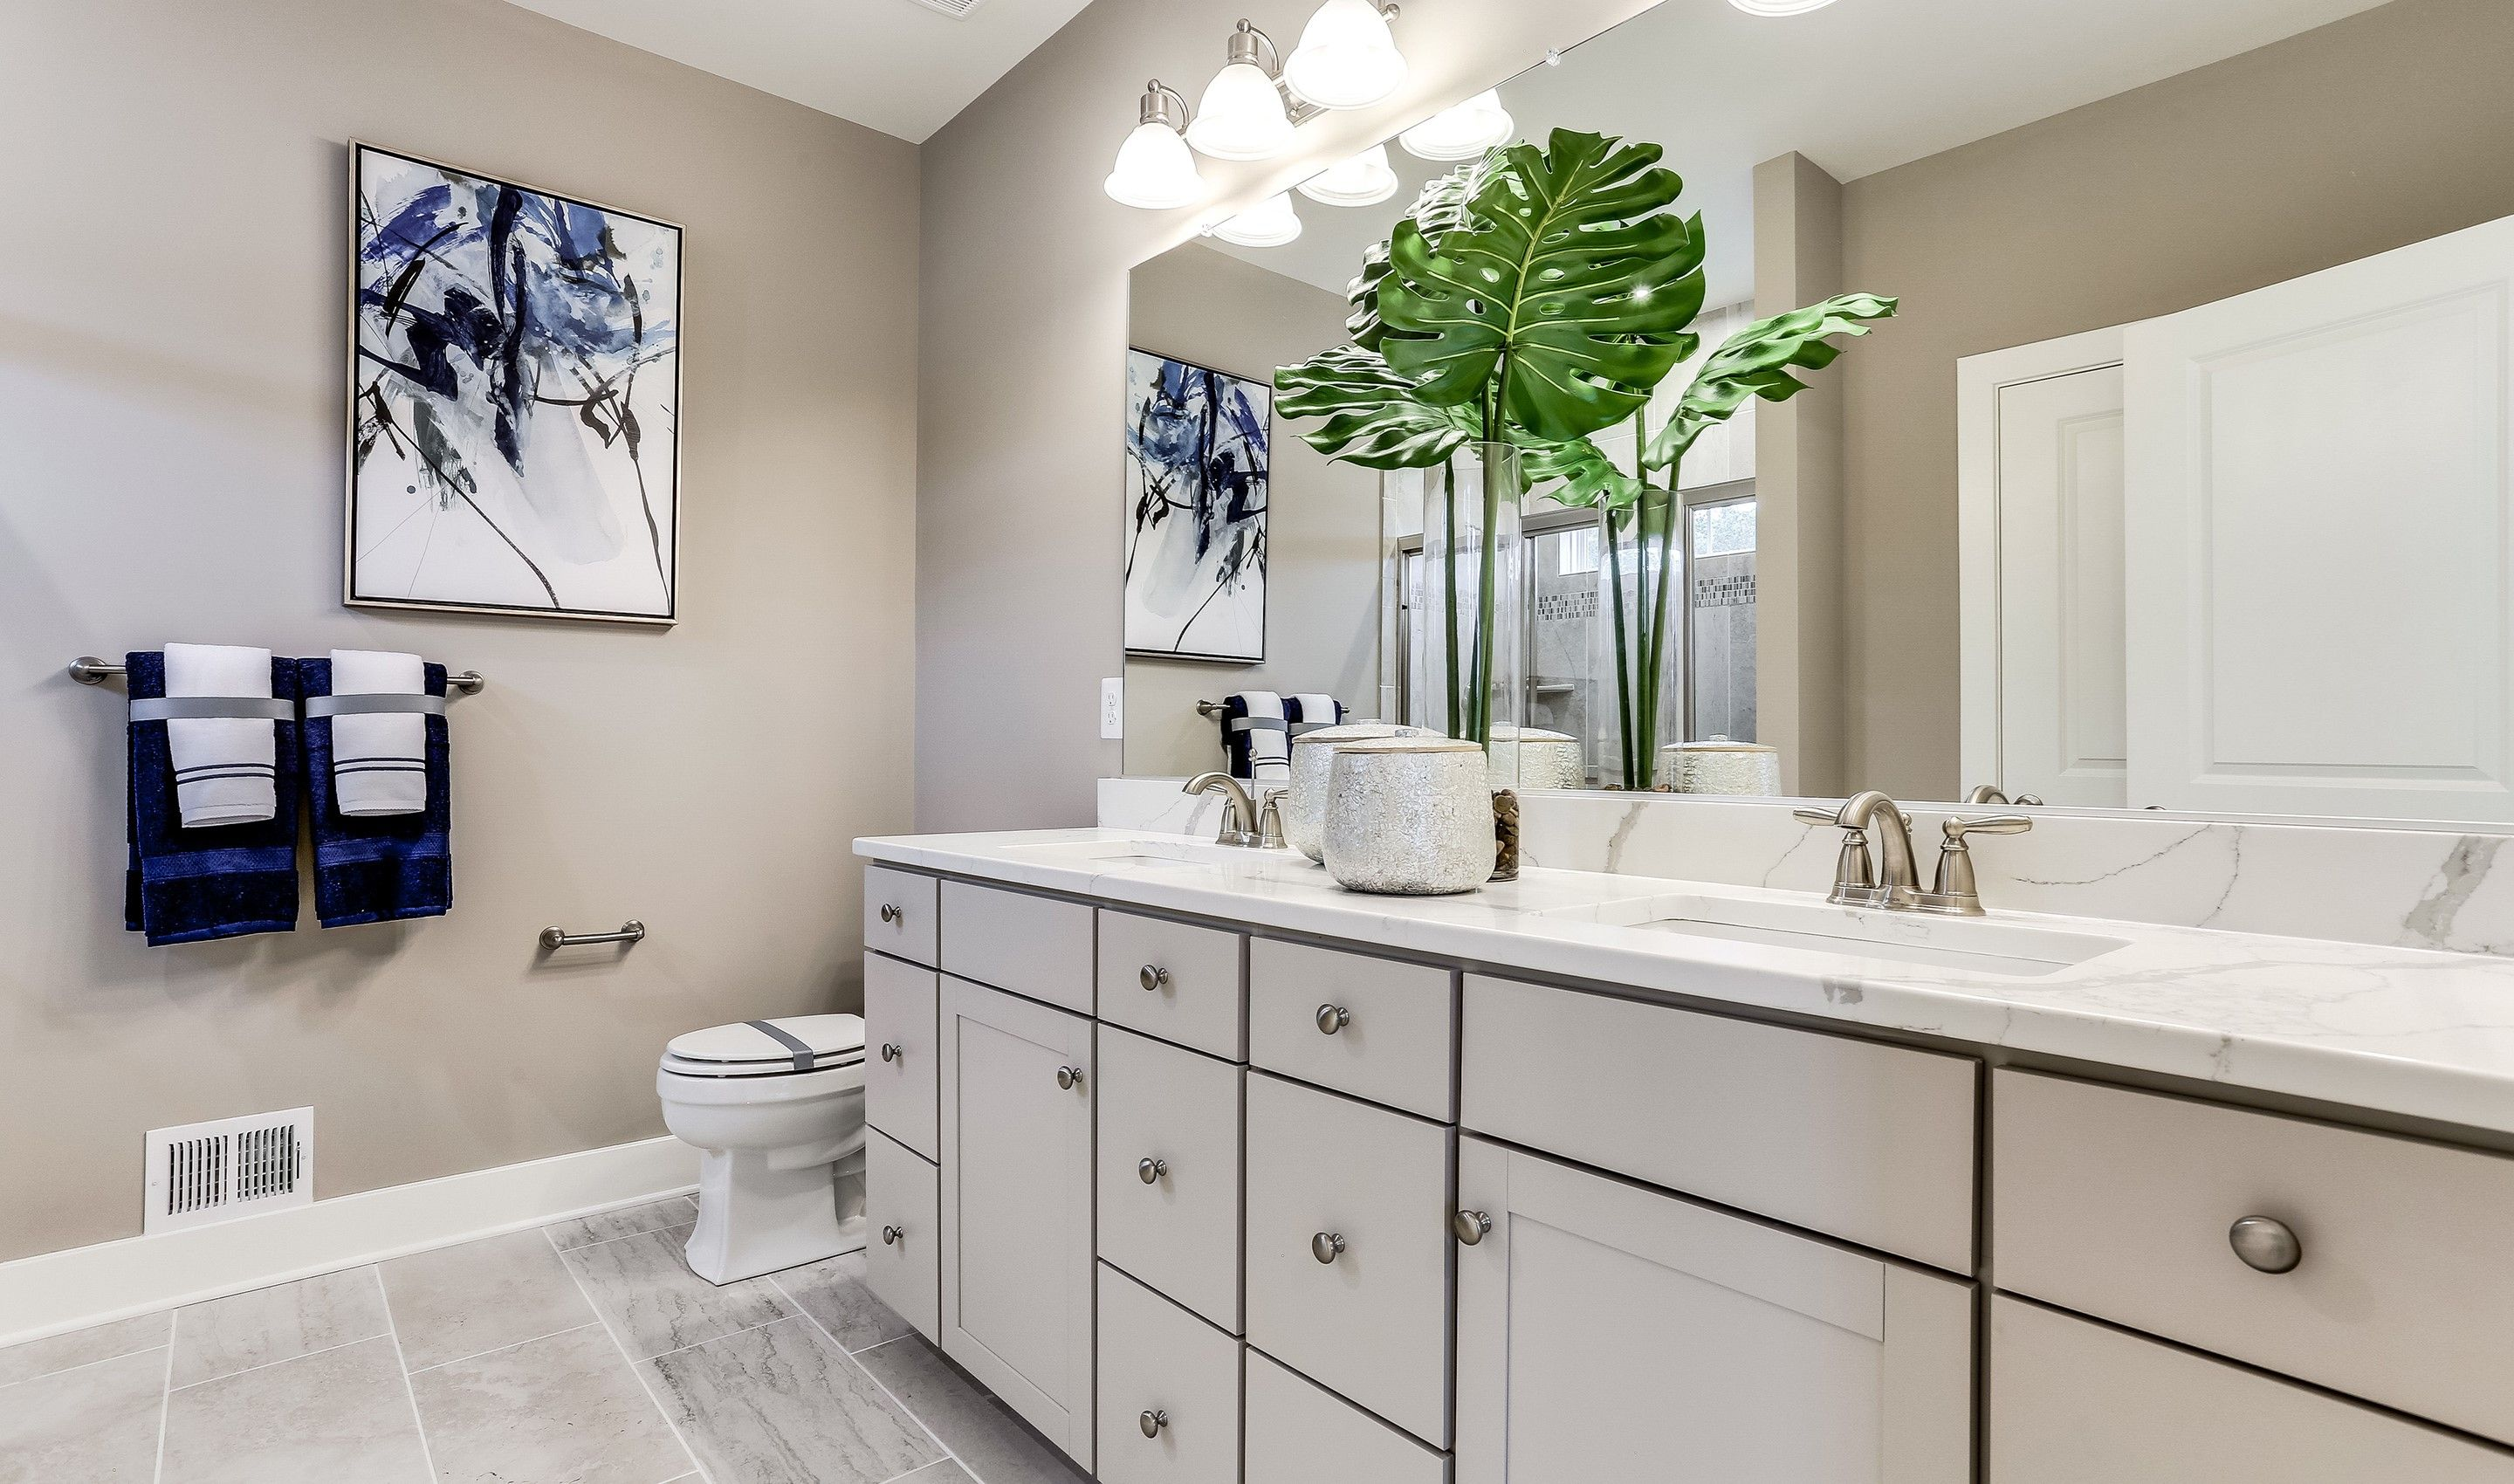 Bathroom featured in the Tomasen By K. Hovnanian® Homes in Washington, MD